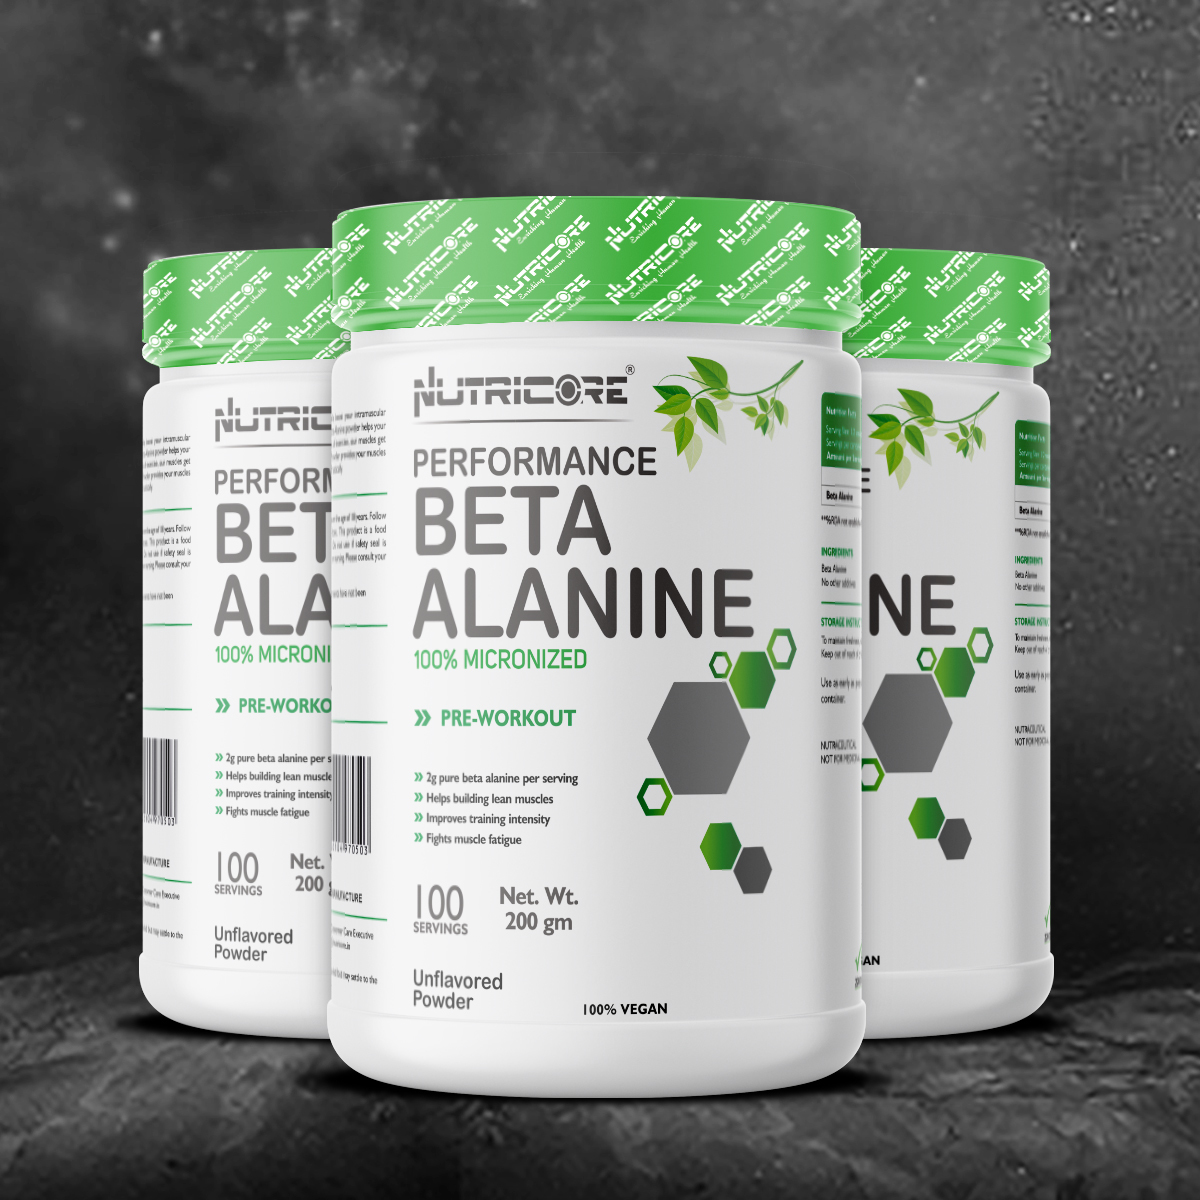 Performance Beta Alanine 100% Micronized Powder